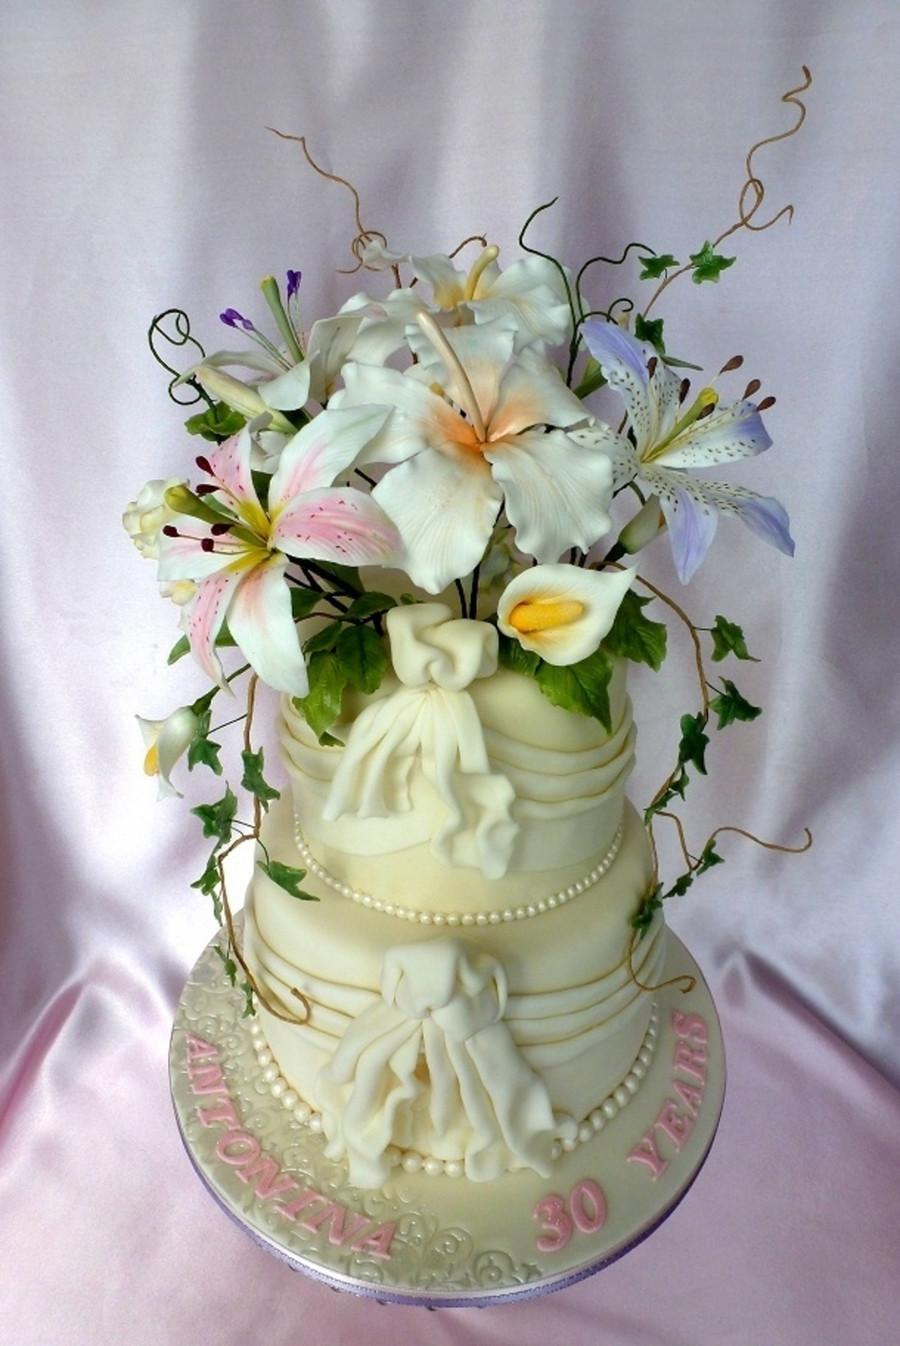 Gumpaste Flowers For Wedding Cakes  White Wedding Cake With Drapes And Gumpaste Flowers